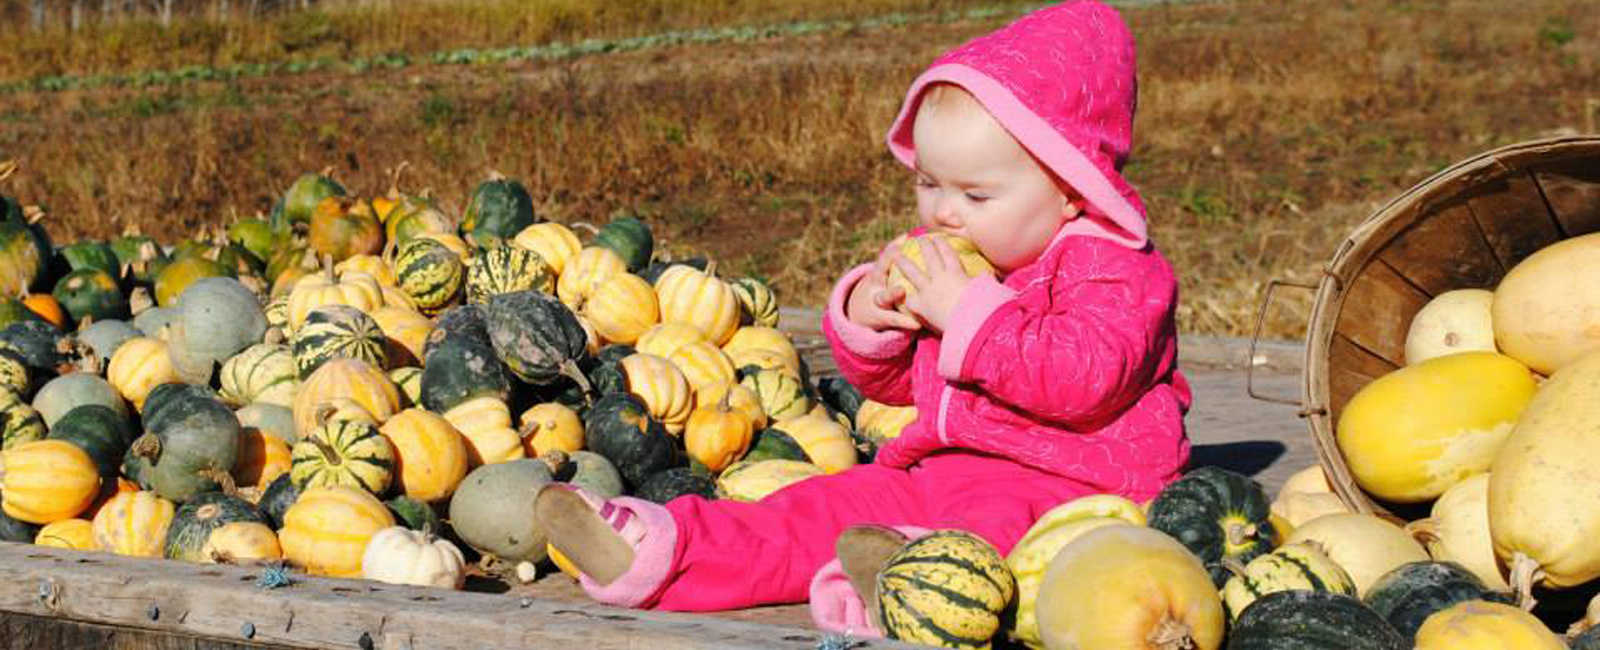 In the fall, Mark and Deanna Jones keep a large supply of pumpkins.